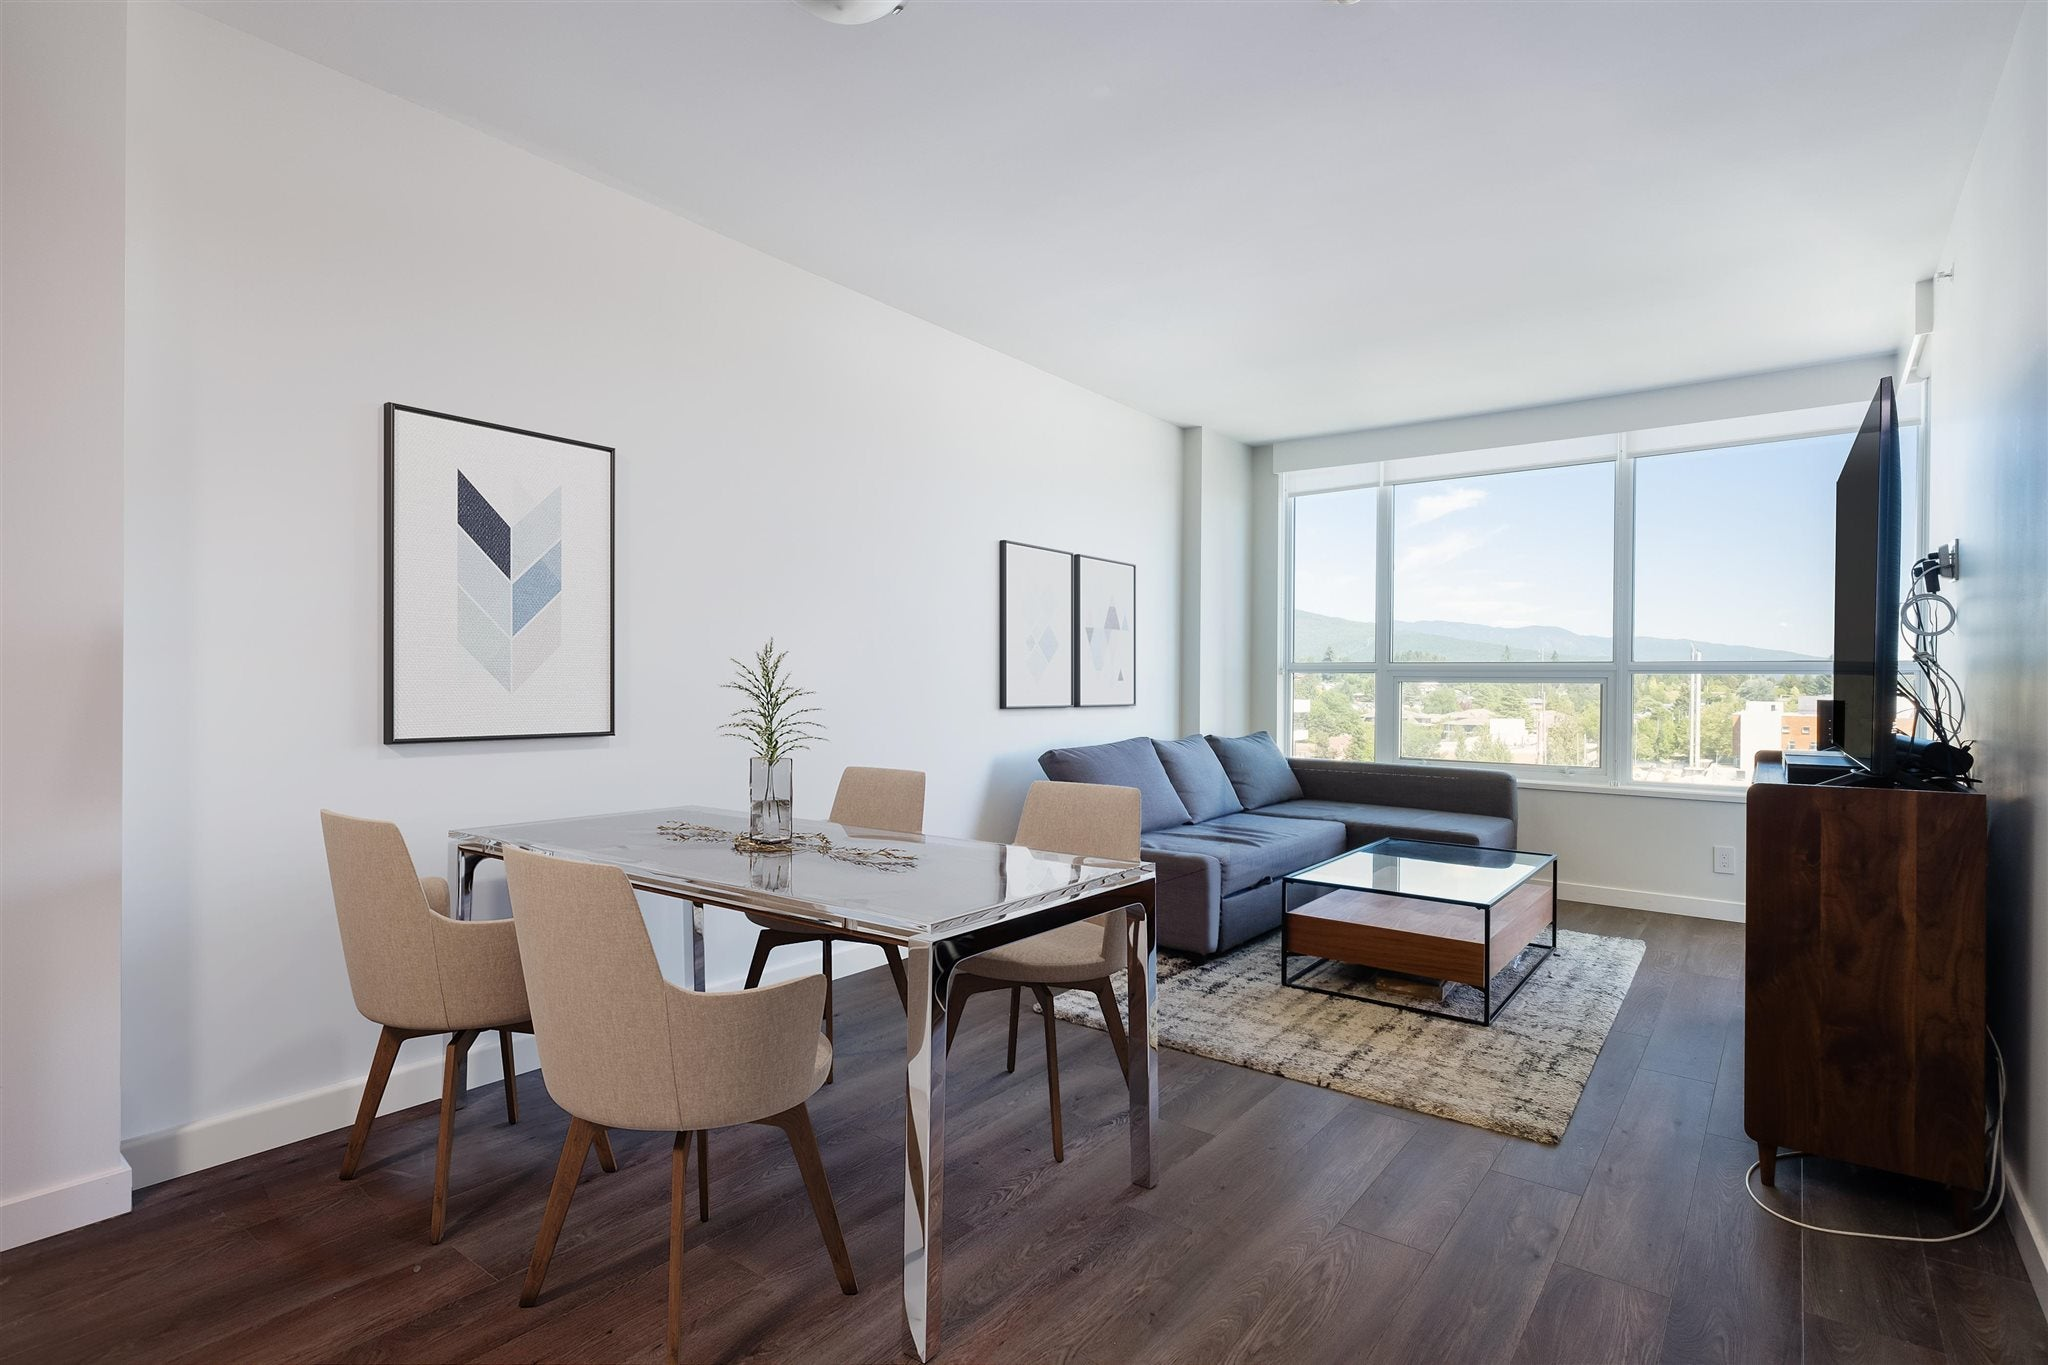 1301 125 E 14TH STREET - Central Lonsdale Apartment/Condo for sale, 1 Bedroom (R2596072) - #1